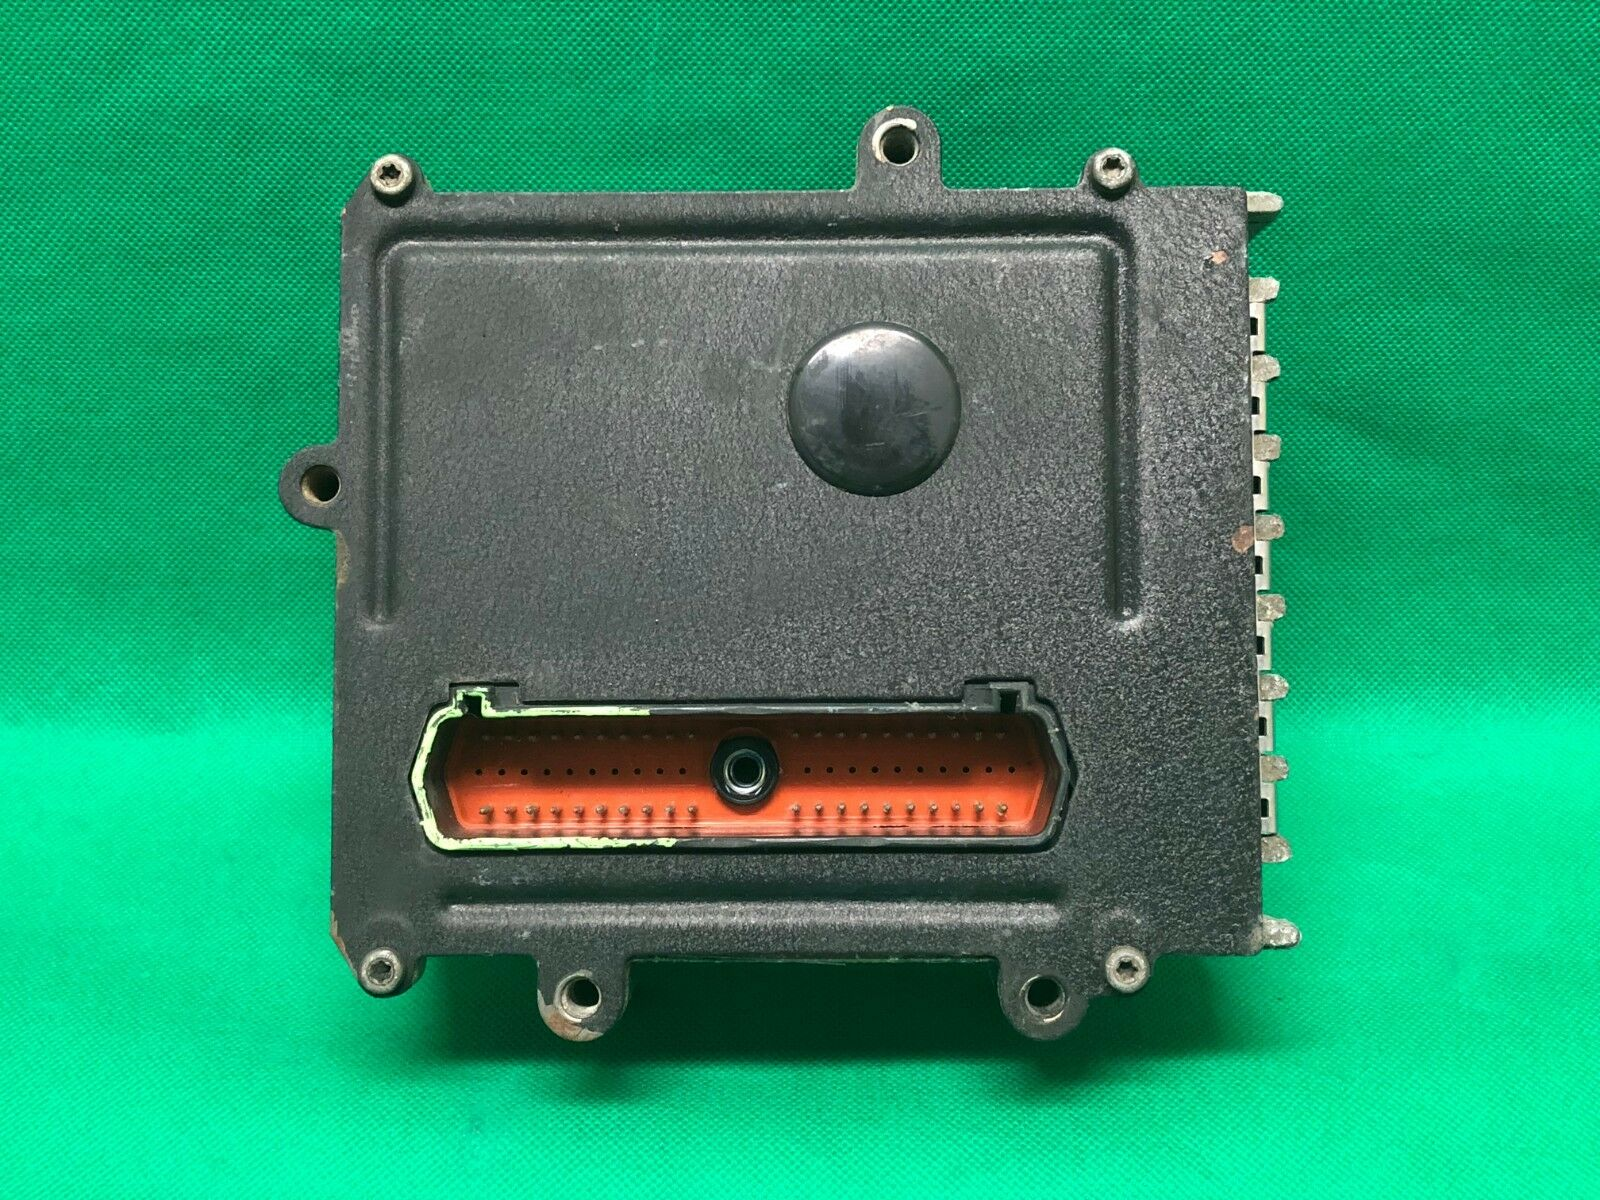 hight resolution of 2003 dodge caravan tcu transmission control module at unit p04727721ae 721ae 721